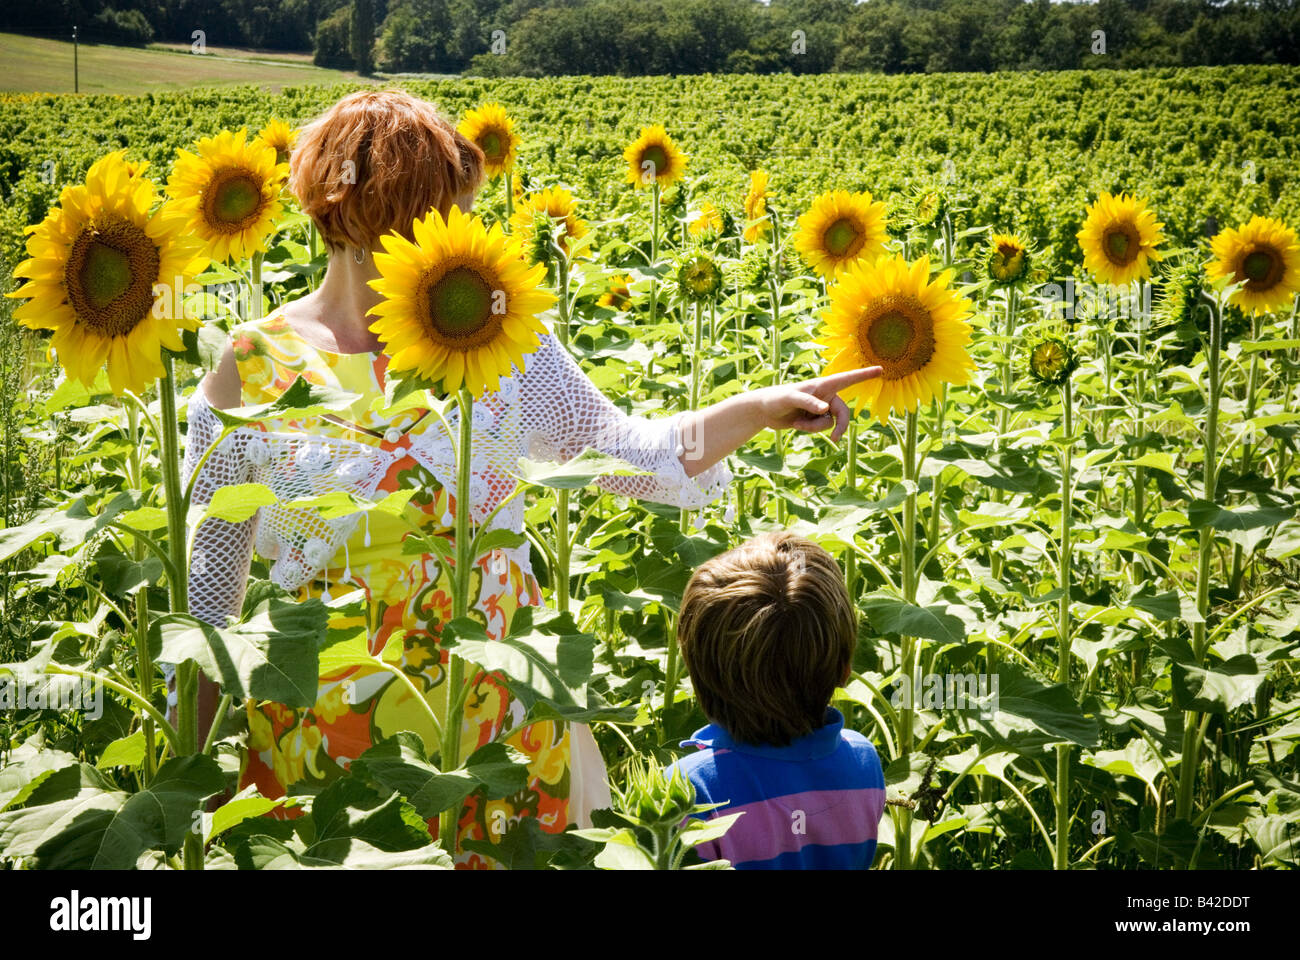 a mother explains to her son the intricacies of a sunflower in the middle of a sunflower field - Stock Image